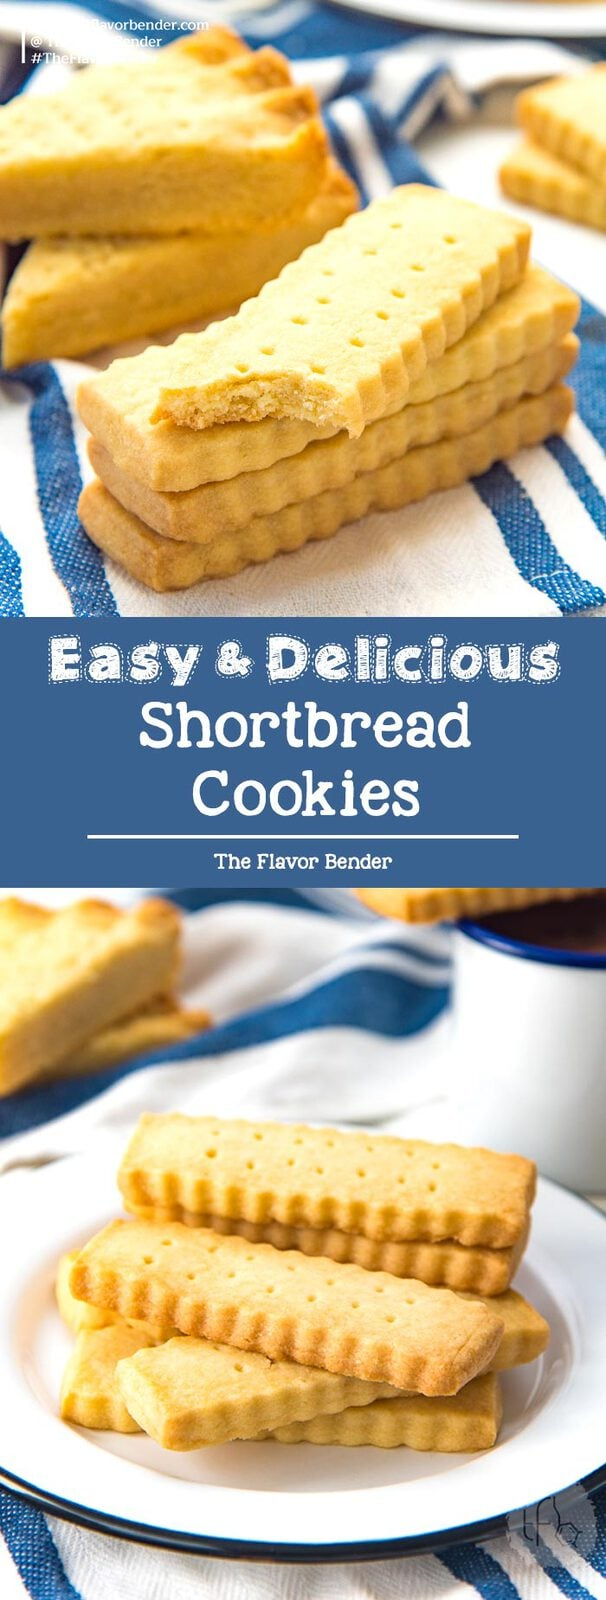 Easy Shortbread Cookies - Buttery, crumbly and light classic shortbread cookies that are easy to make with the minimal amount of ingredients you ALWAYS have in your kitchen! Make the classic version or scottish shortbread. With tips and tricks to make these cookies easily for any occasion! #ShortbreadCookies #EasyCookies #HolidayCookies #ButterCookies #CookieGuide